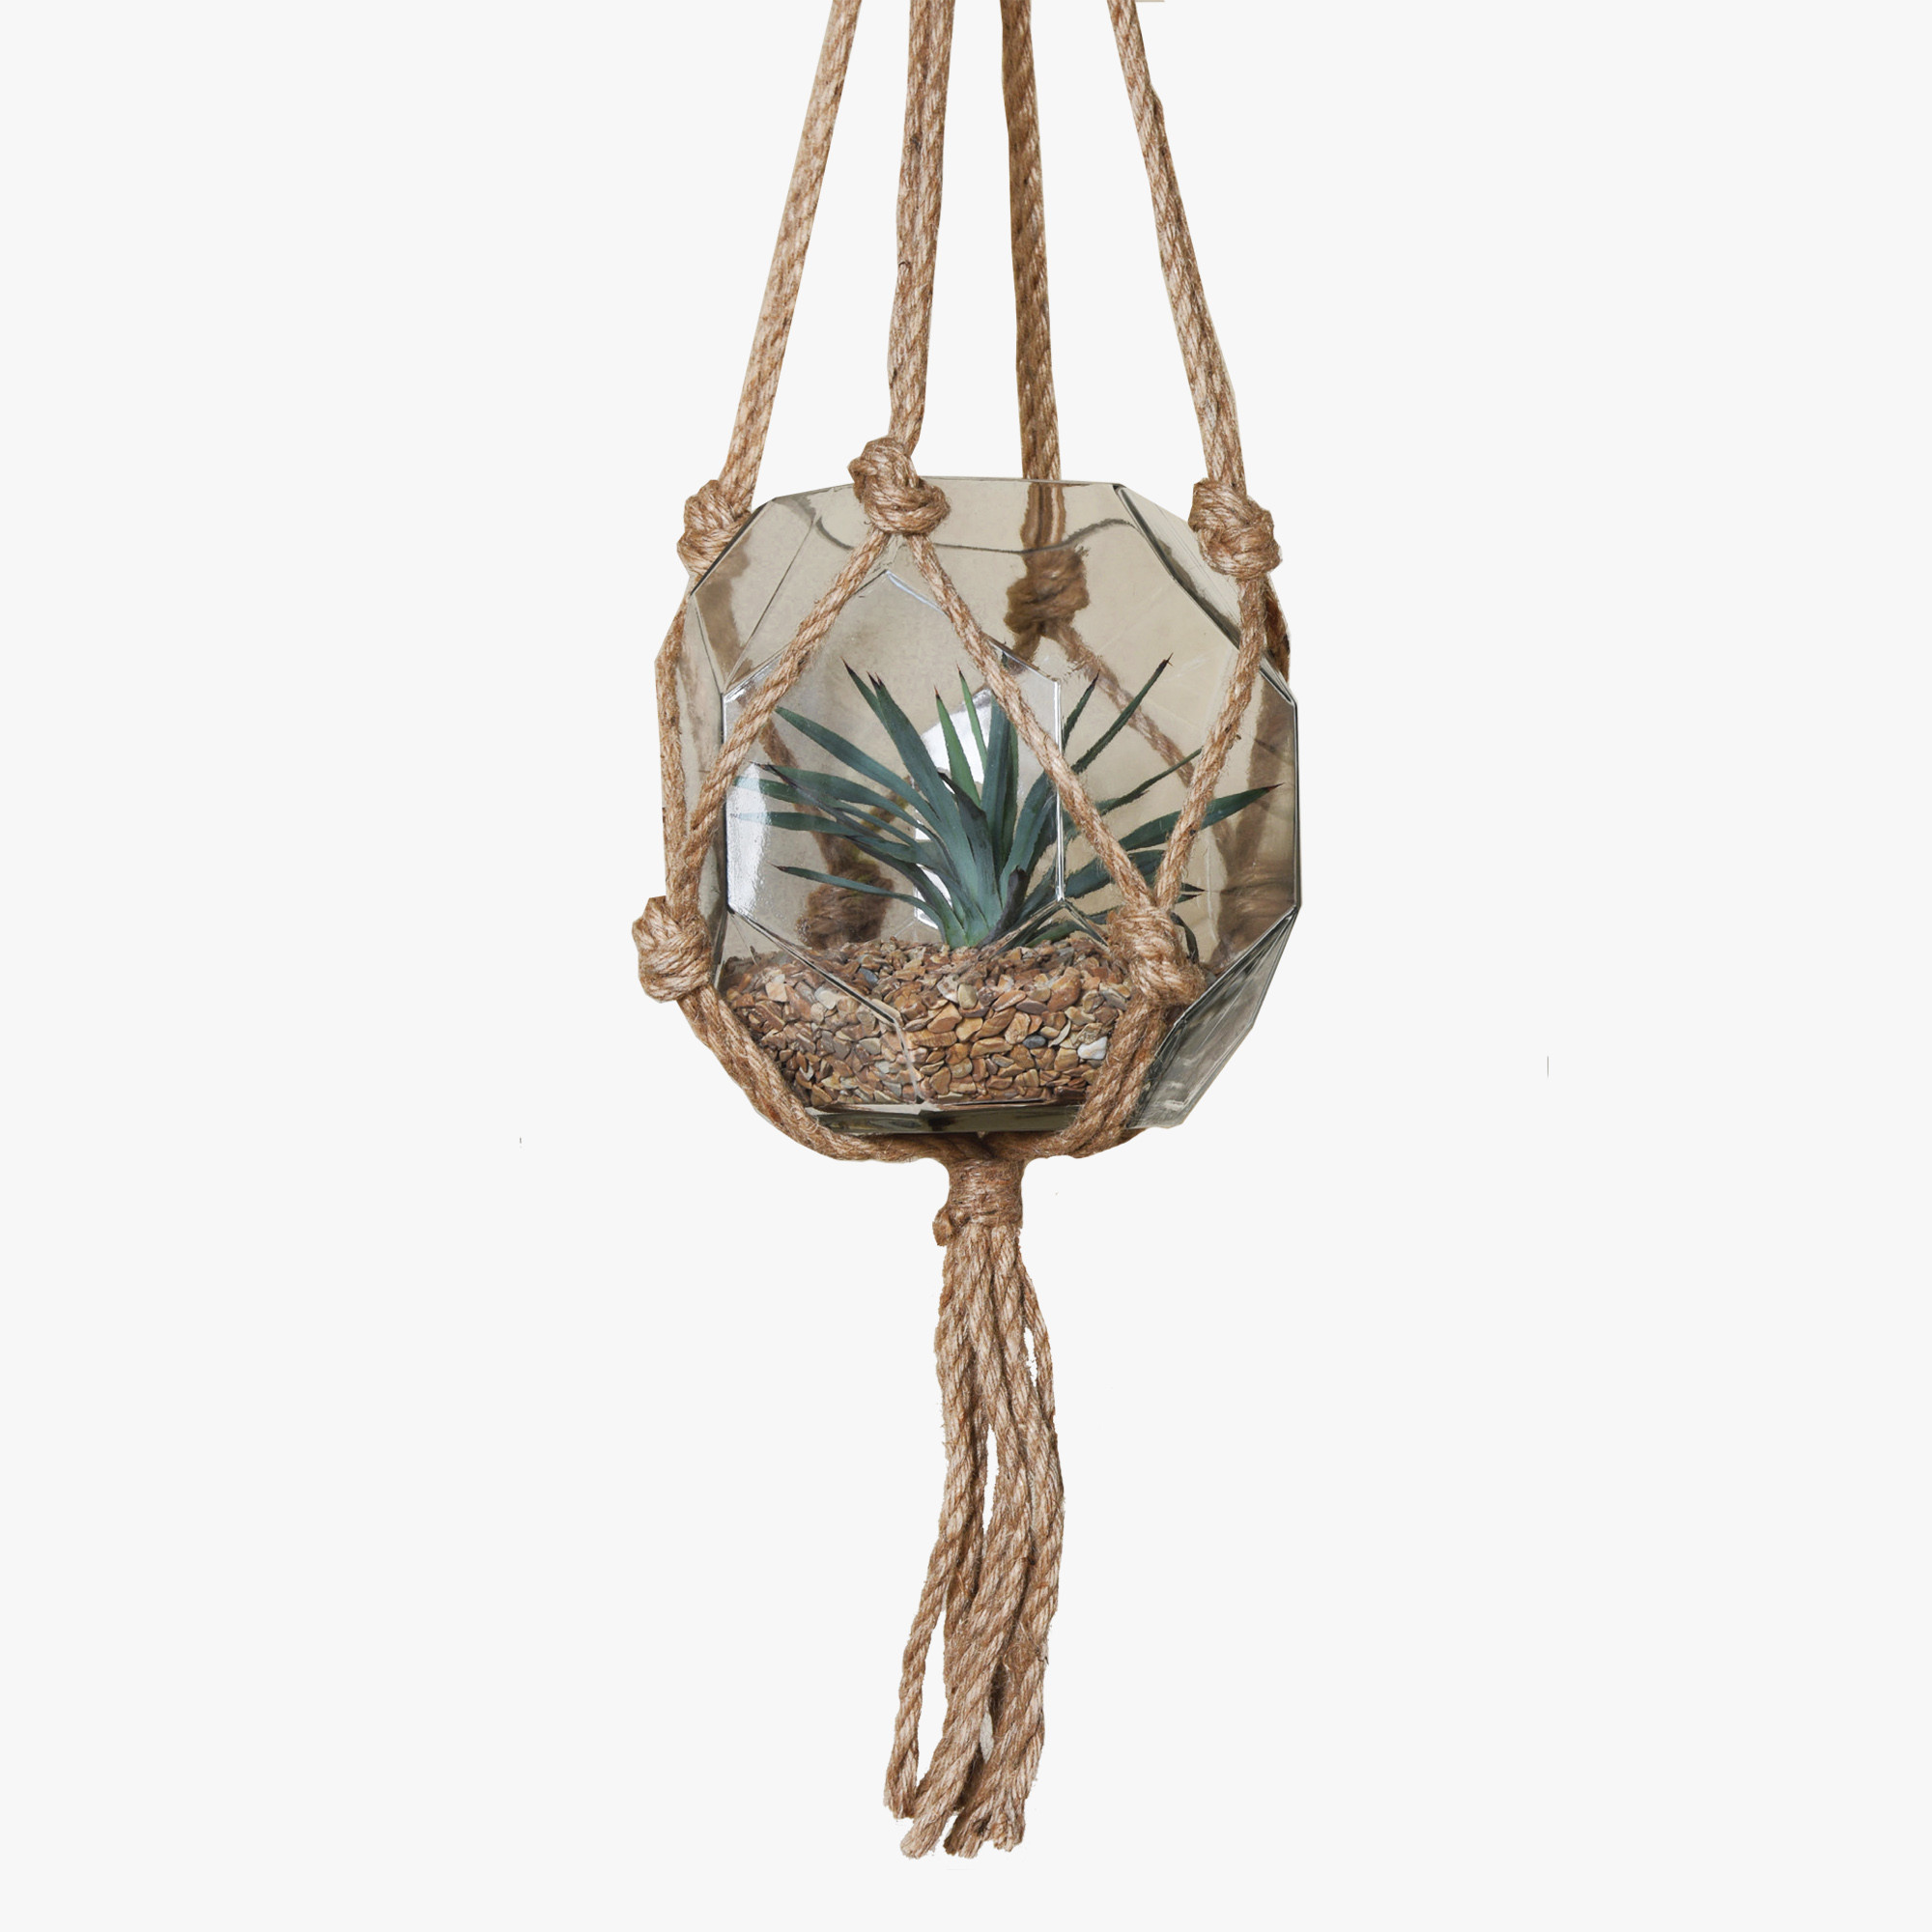 Macrame Plant Holder Awesome Jute Macrame Plant Hanger Dear Keaton Of Luxury 45 Images Macrame Plant Holder